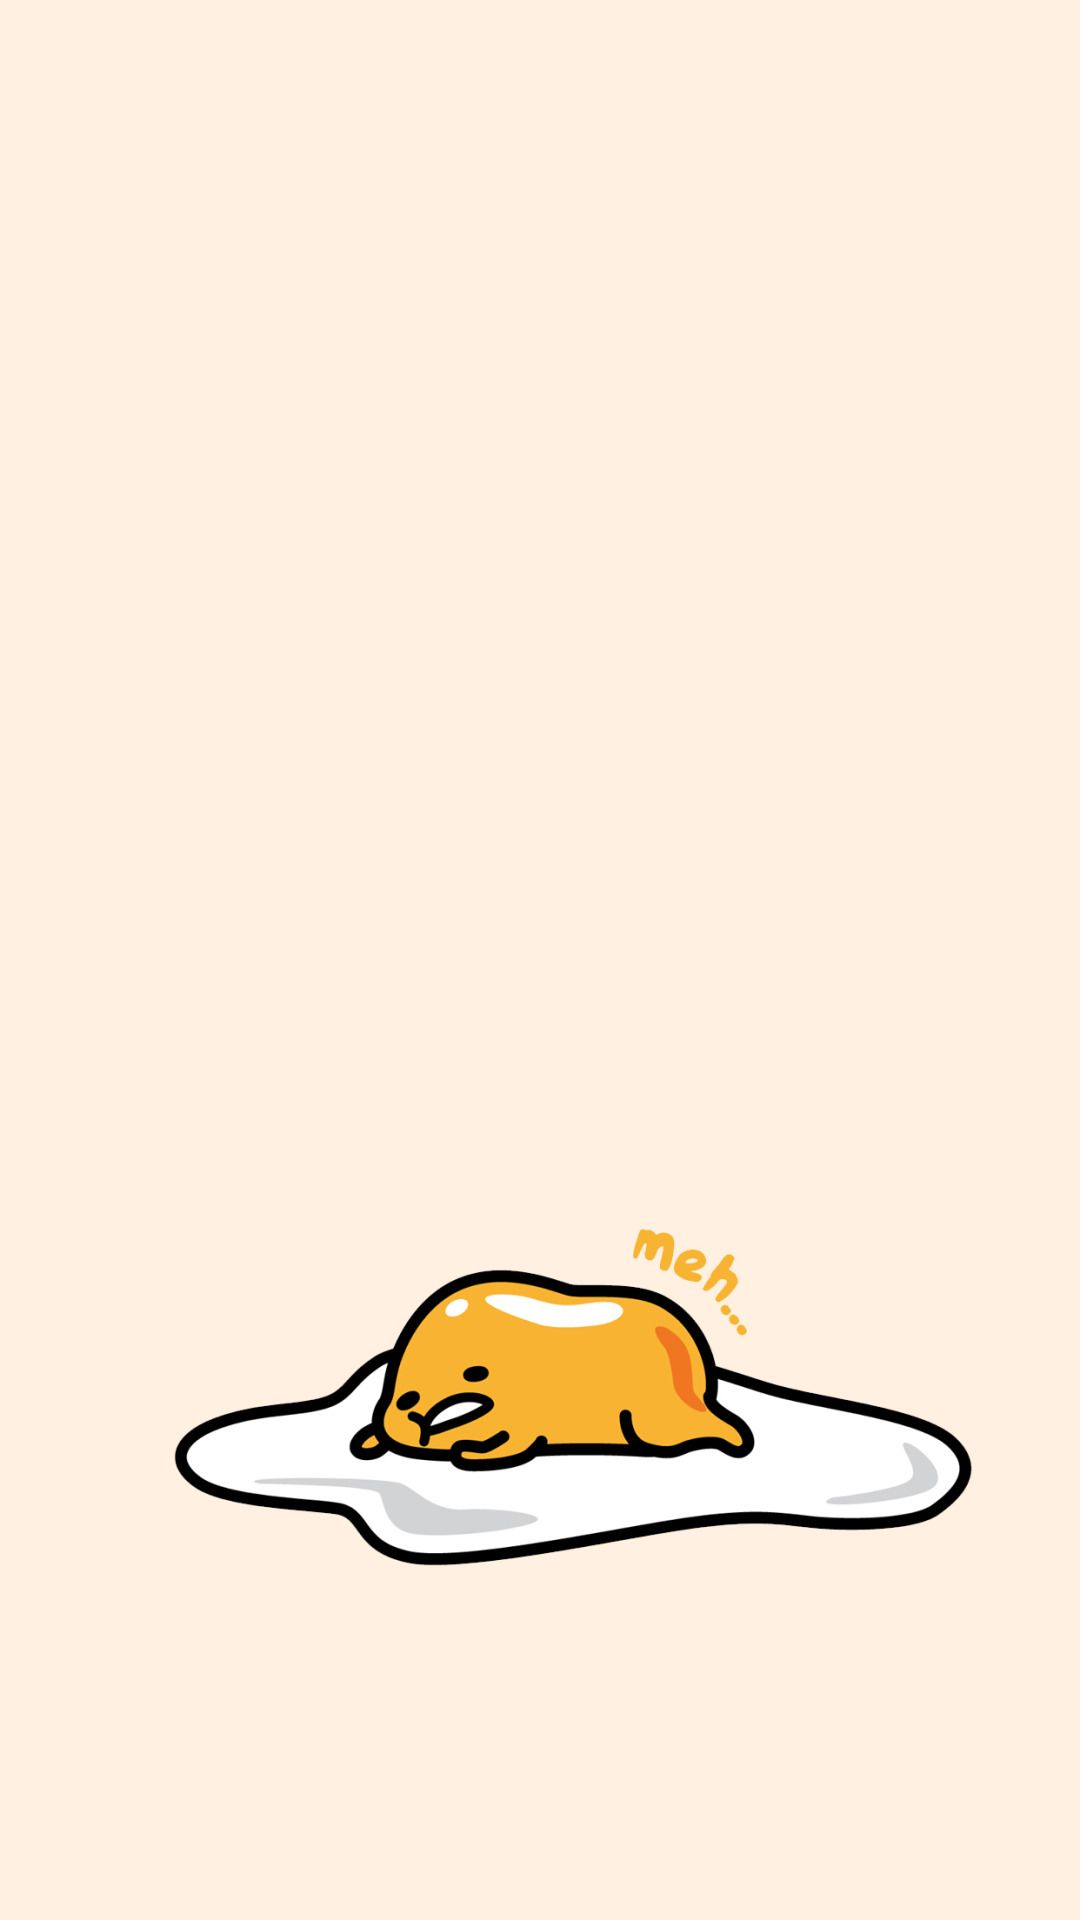 gudetama wallpaper Tumblr Wallpaper Pinterest